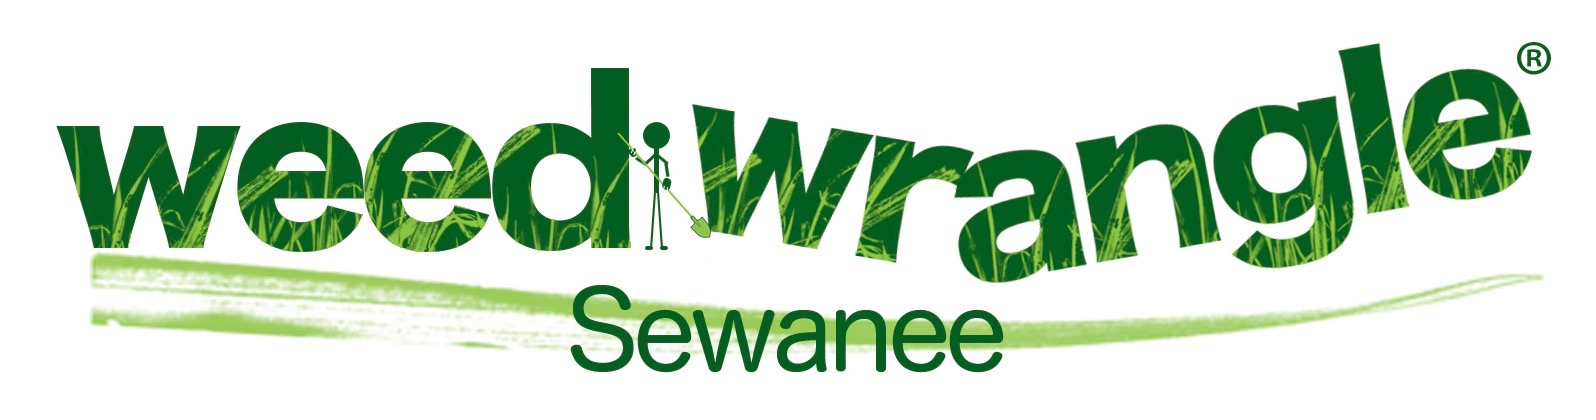 weedwrangle_sewanee